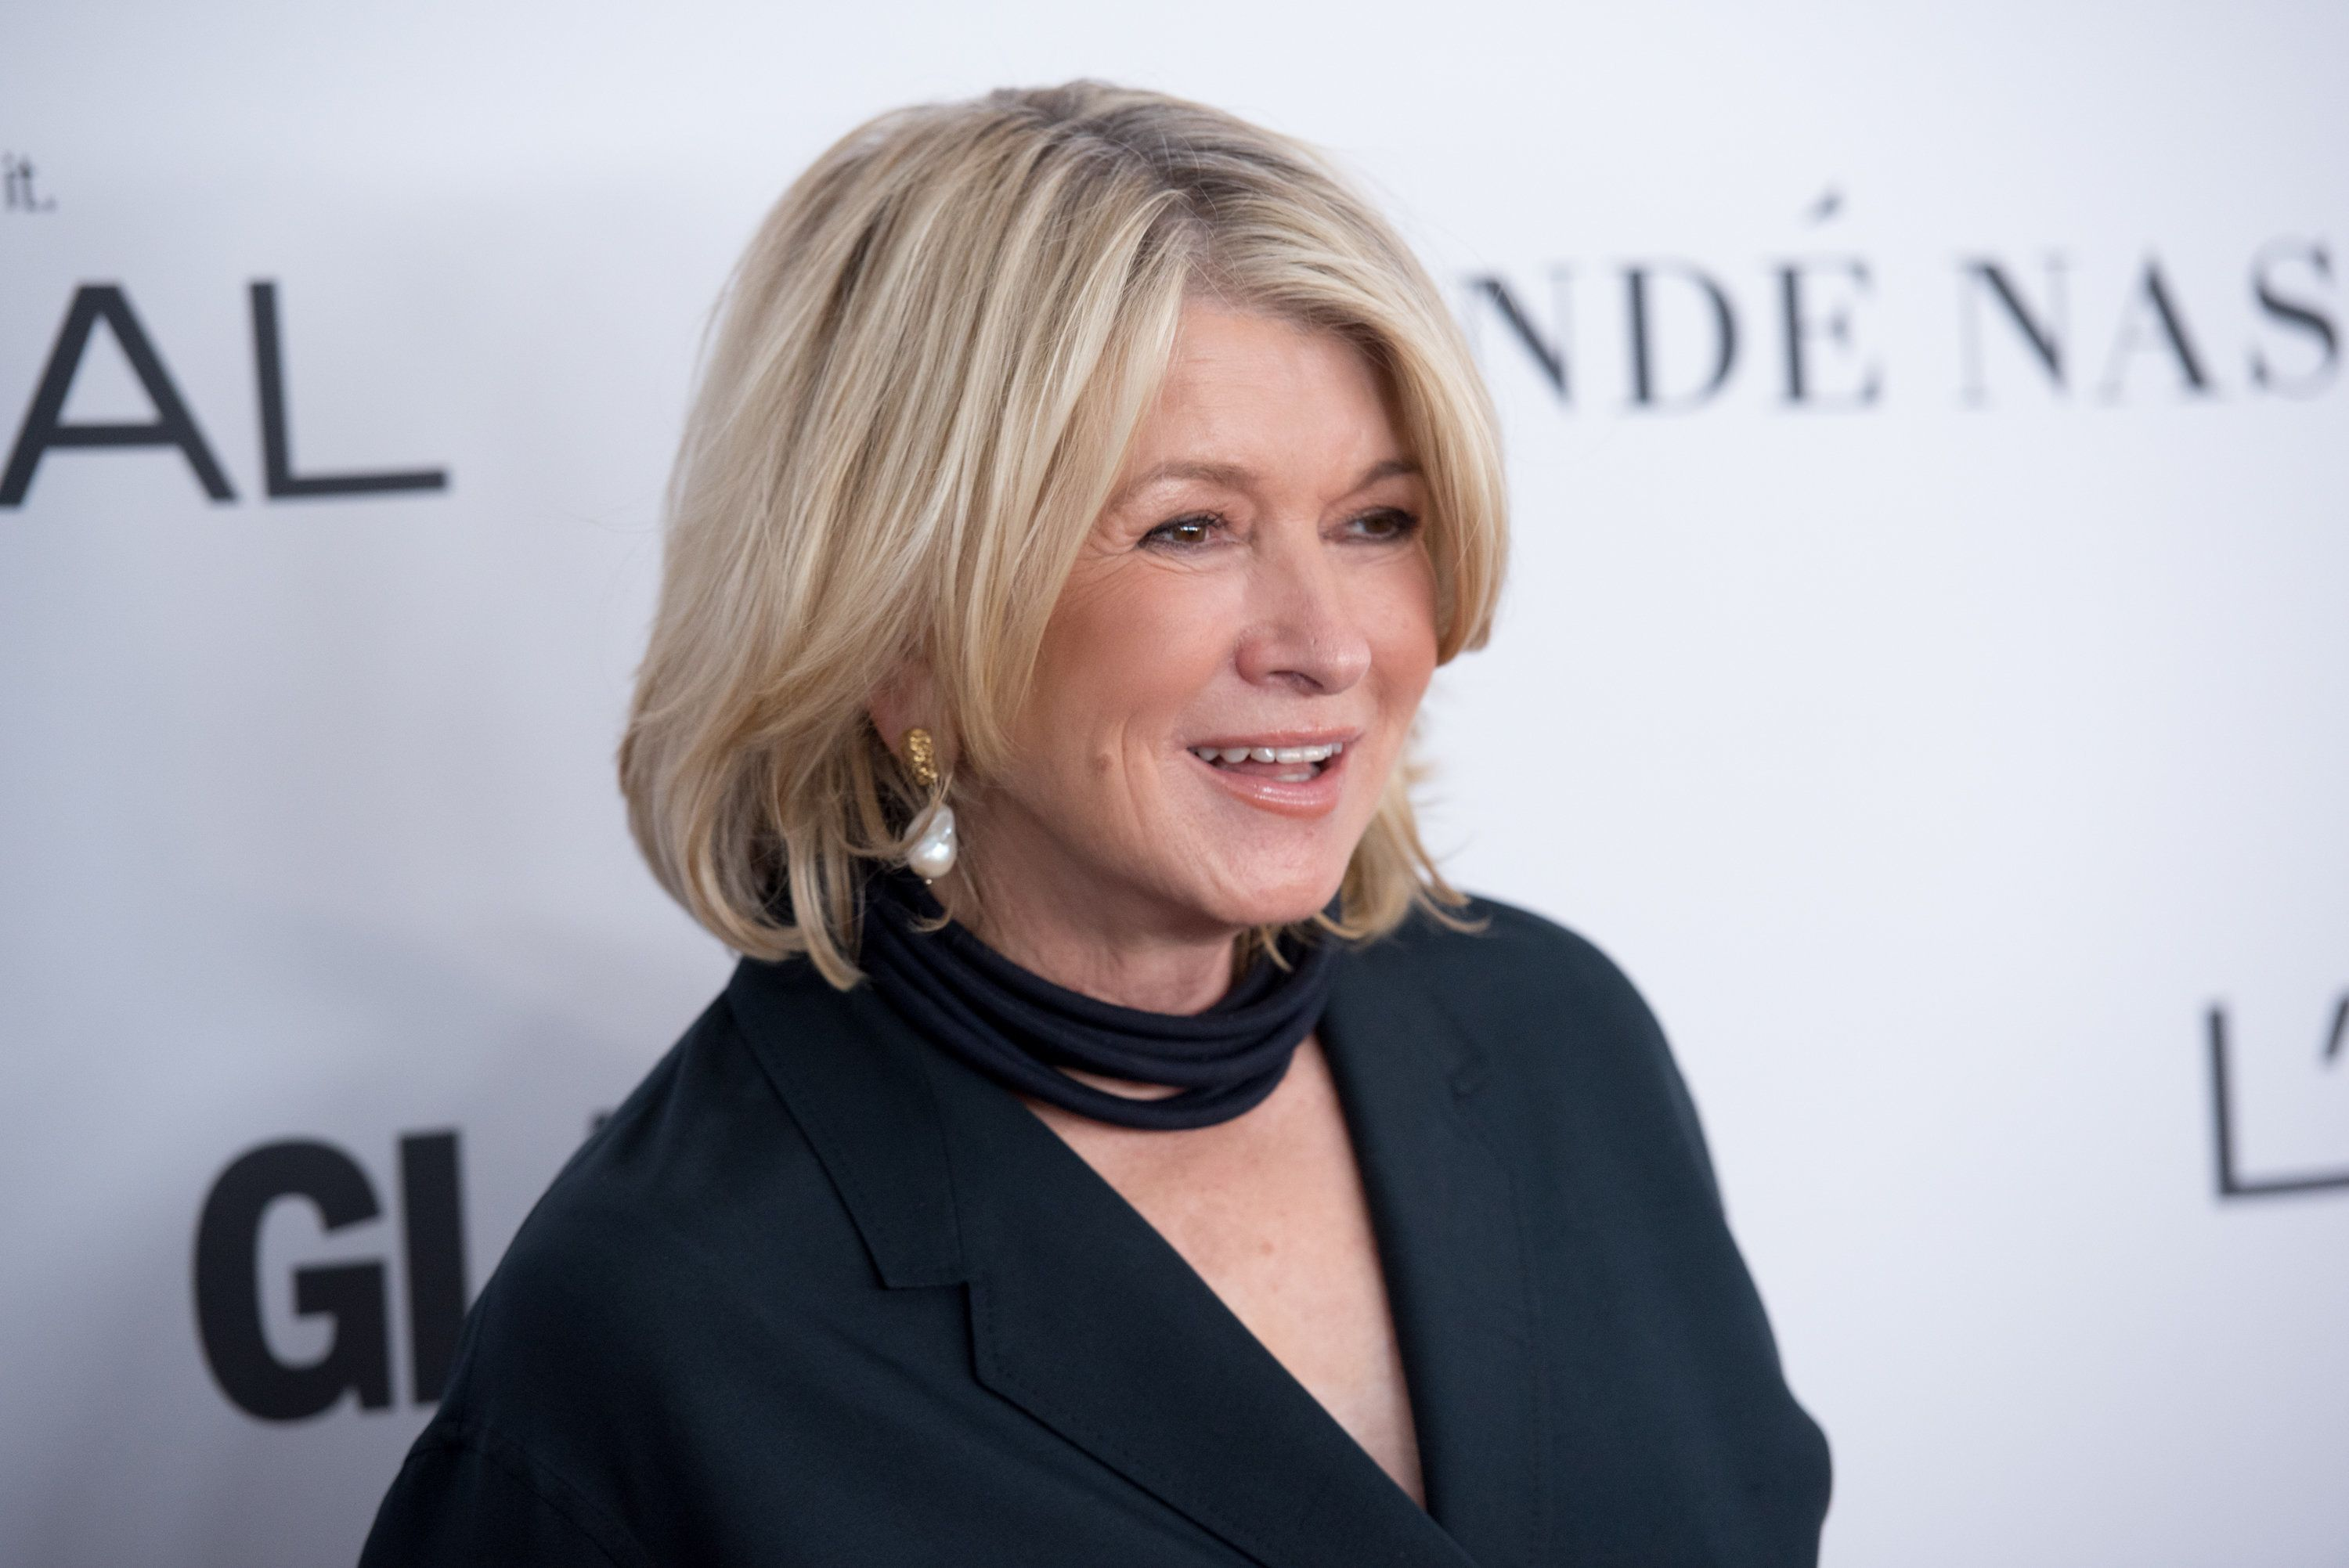 NEW YORK, NY - NOVEMBER 13:  Martha Stewart attends the 2017 Glamour Women of The Year Awards at Kings Theatre on November 13, 2017 in New York City.  (Photo by Noam Galai/WireImage)